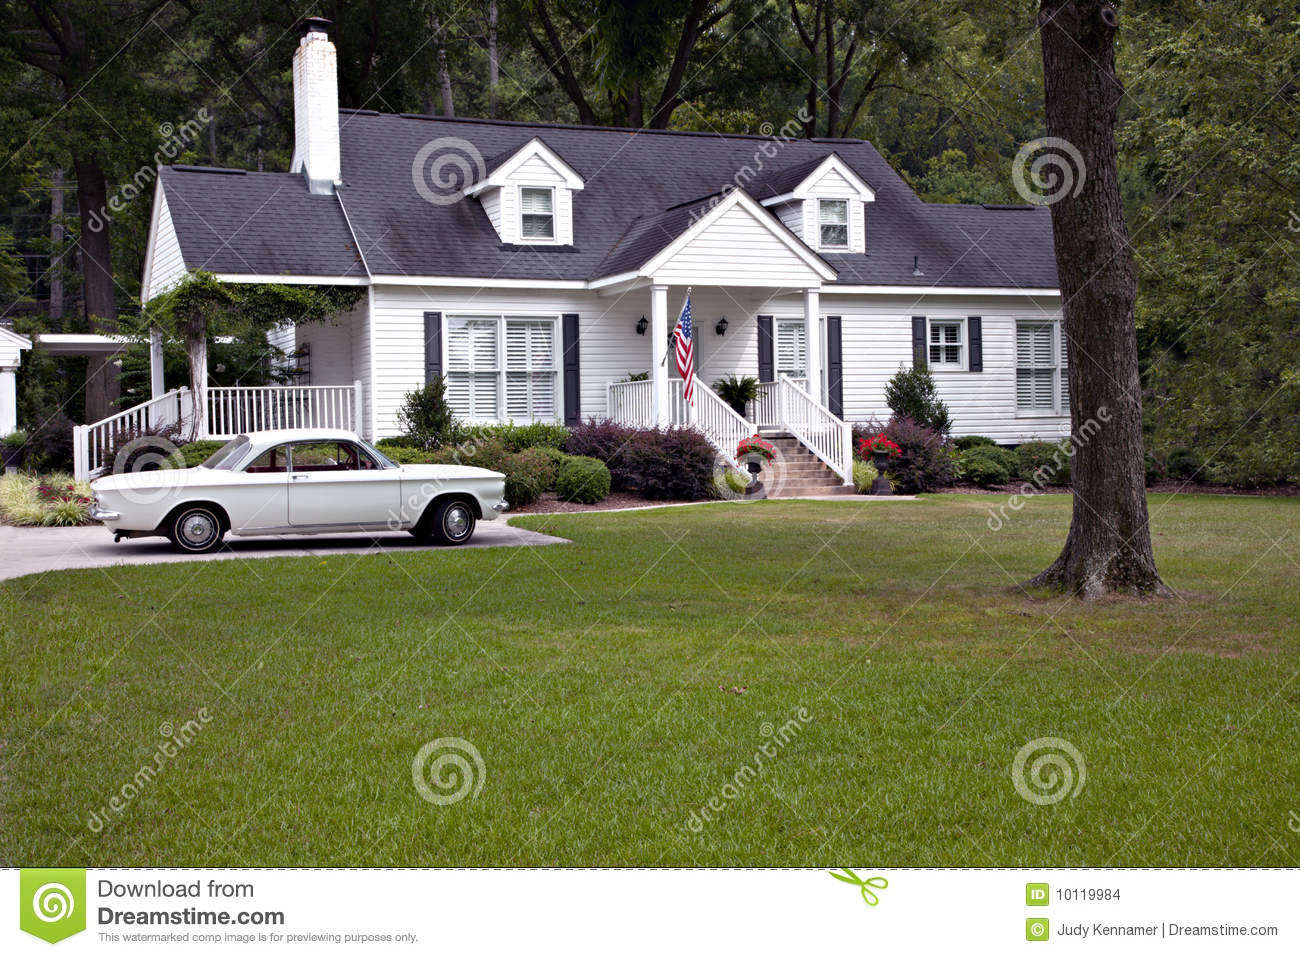 1950S House New 1950's House With Flag And Car Stock Images  Image 10119984 2017